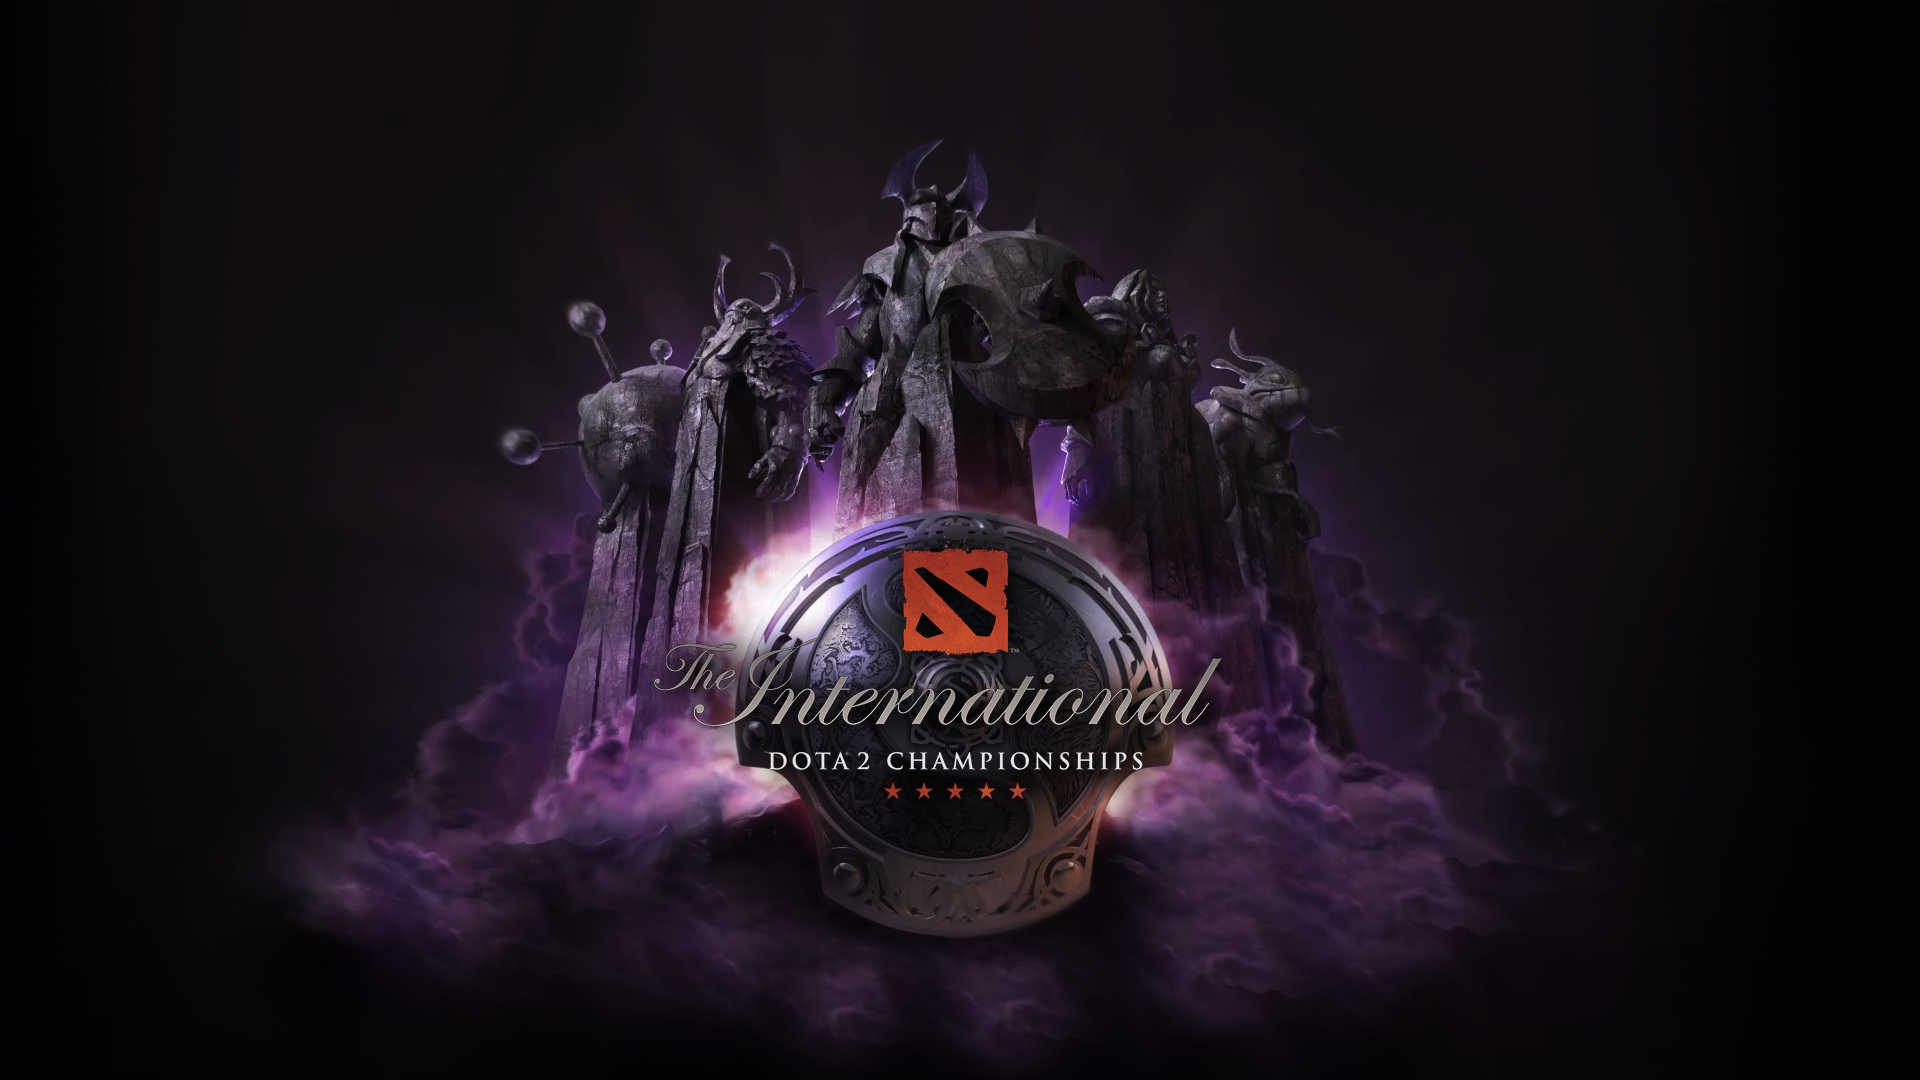 International dota 2 2014 free desktop wallpaper Dota 2